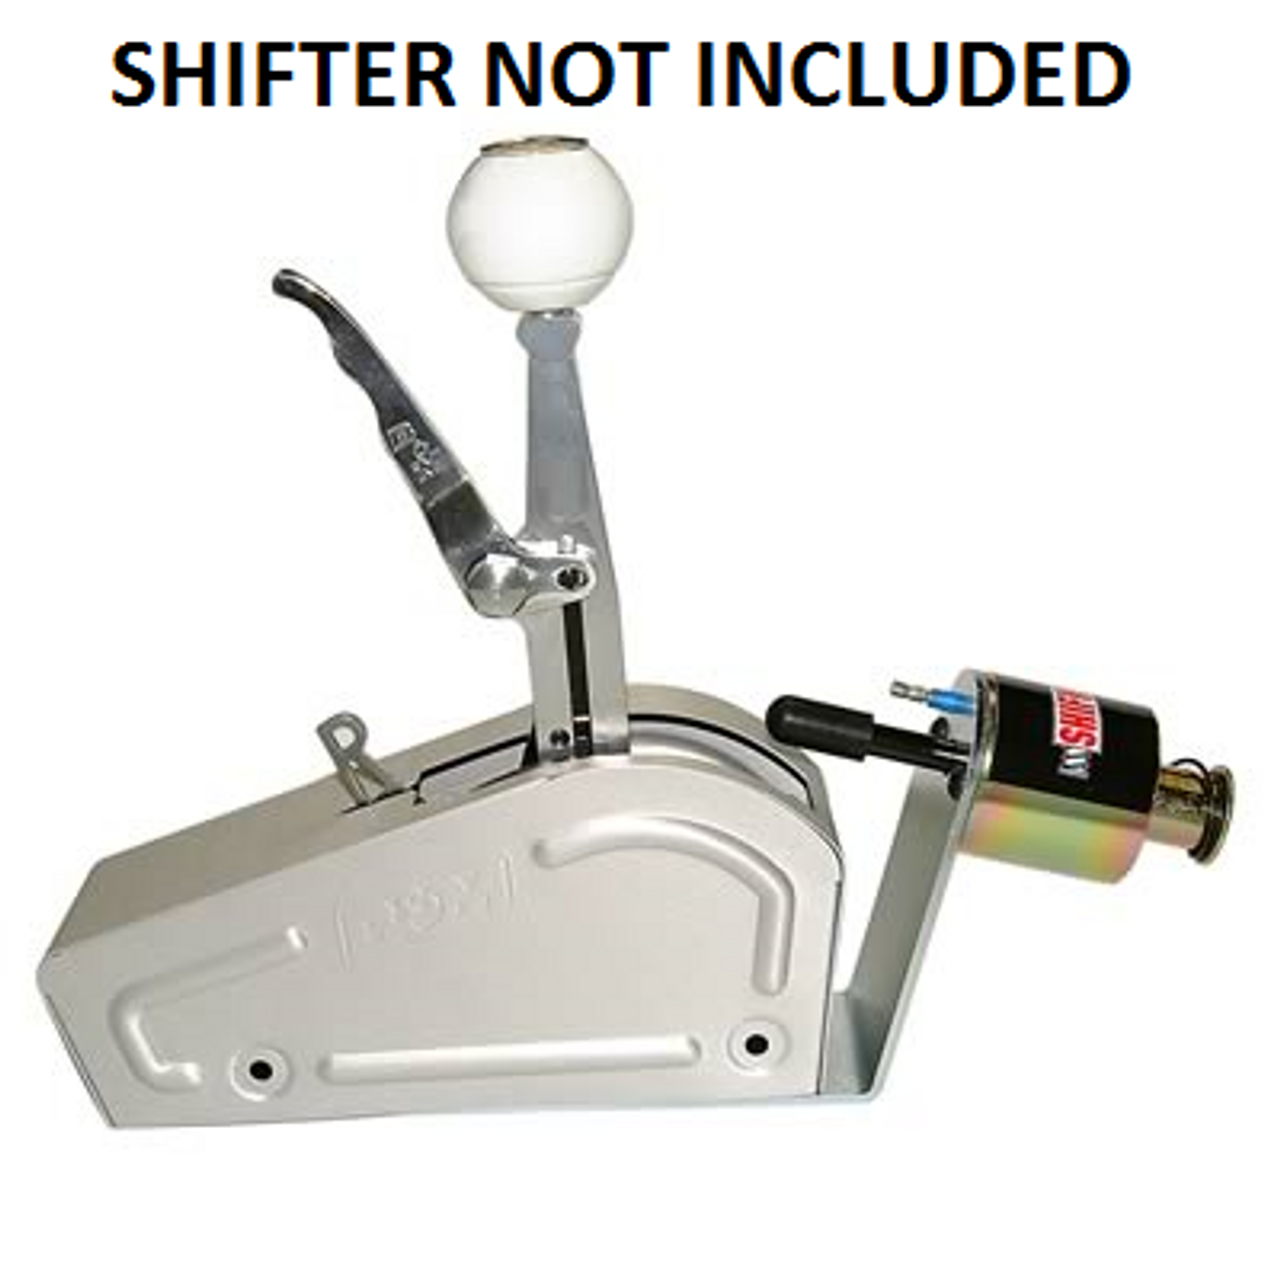 SHIFNOID Electric Shifter Solenoid 2 Speed Powerglide Front Cable SN5000FC (SHIFTER NOT INCLUDED)